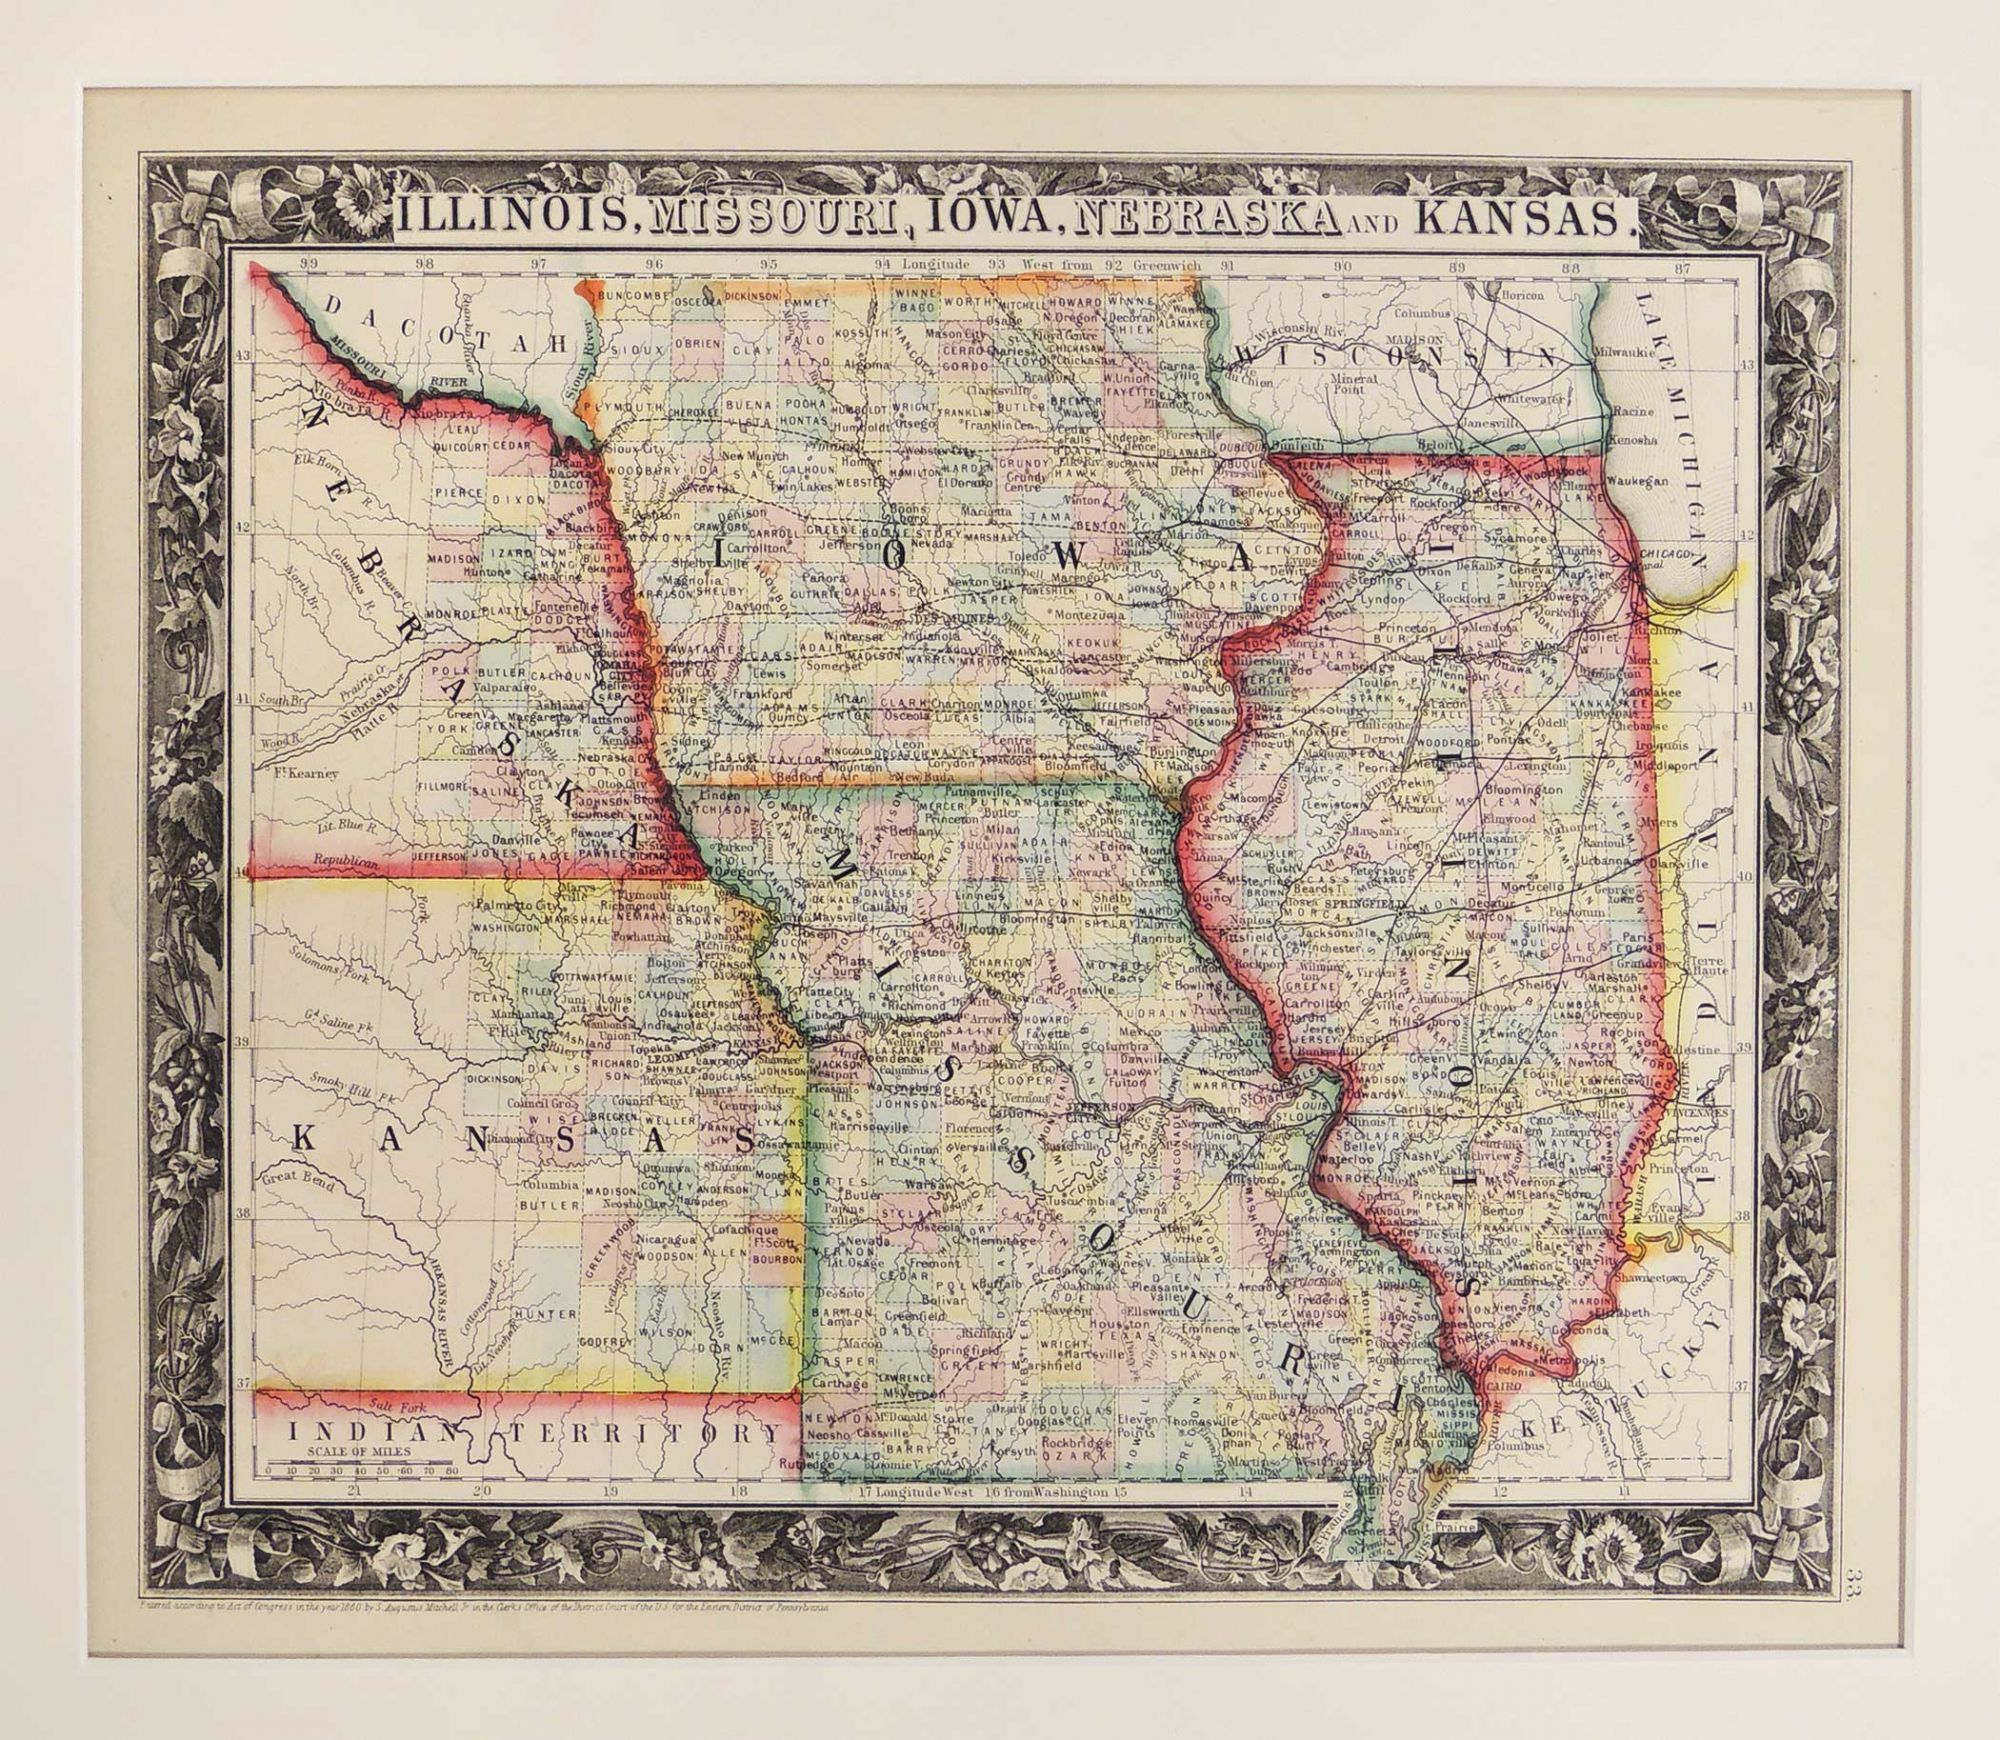 Map of Illinois, Missouri, Iowa, Nebraska and Kansas | Samuel